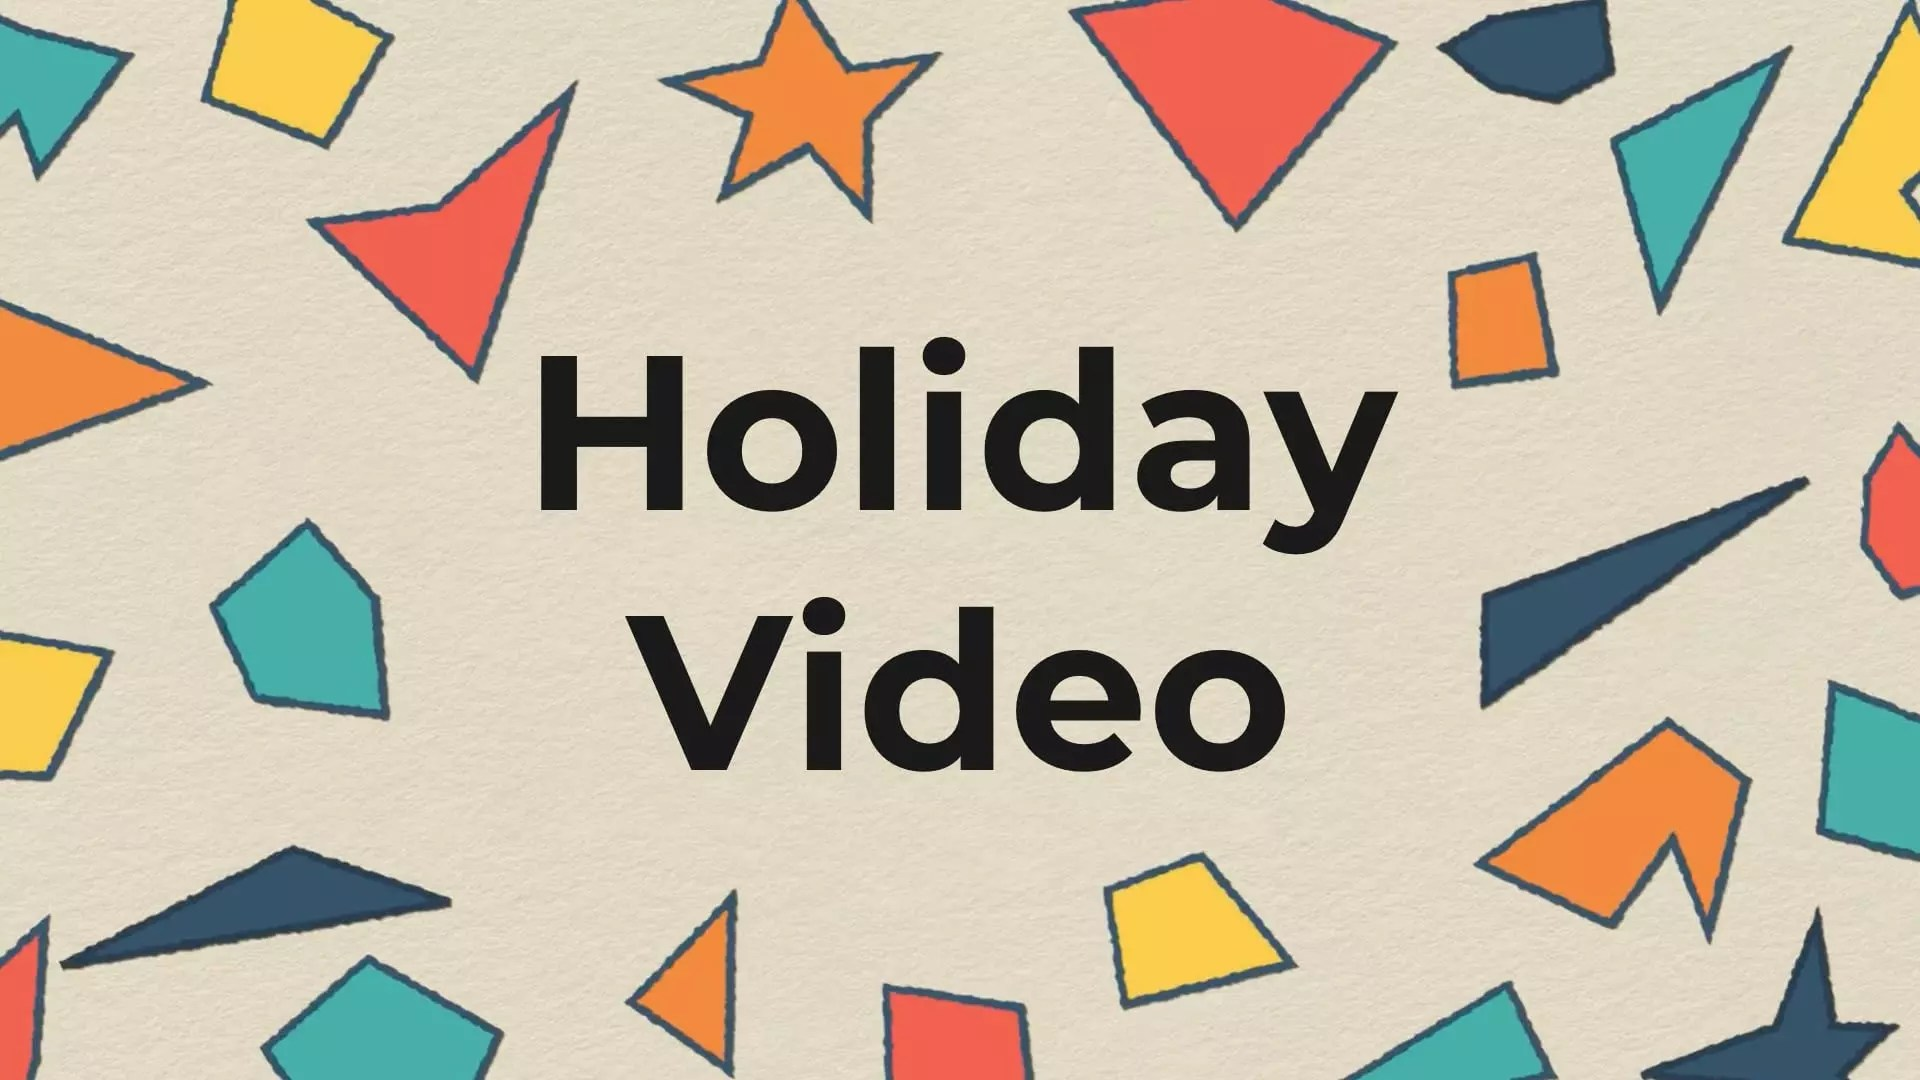 holiday video maker create holiday